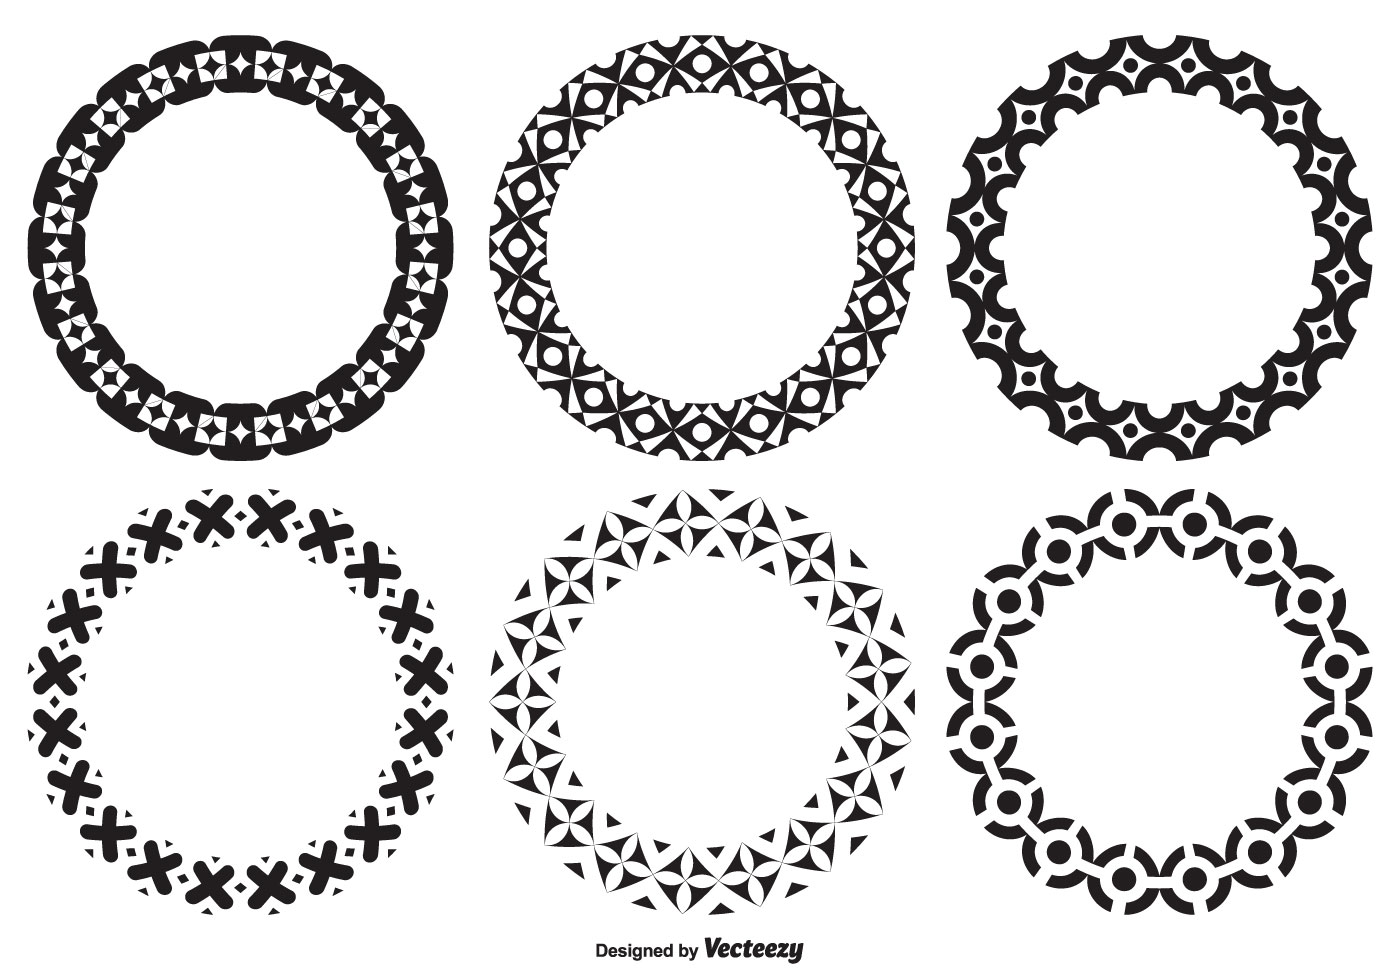 Assorted Decorative Circle Shapes - Download Free Vector ...